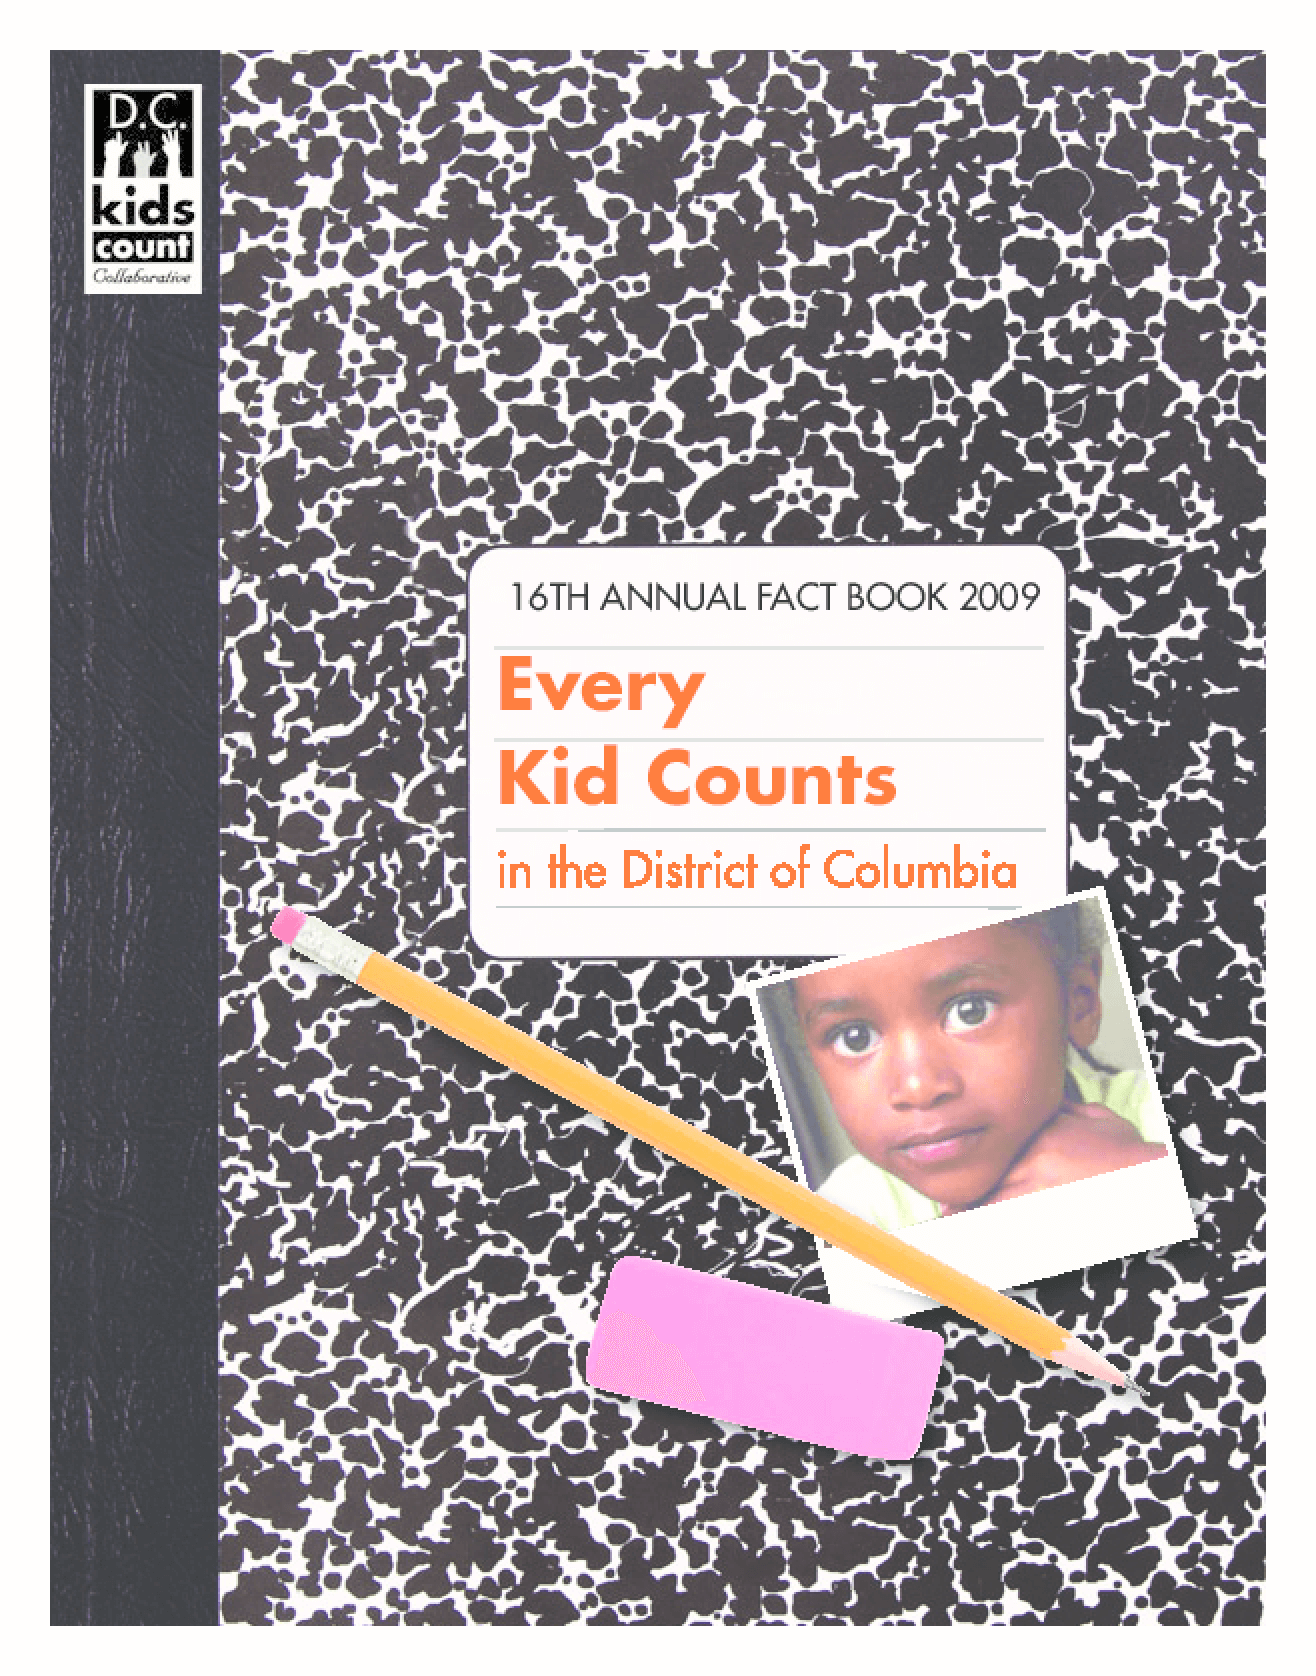 Every Kid Counts in the District of Columbia: 16th Annual Fact Book 2009